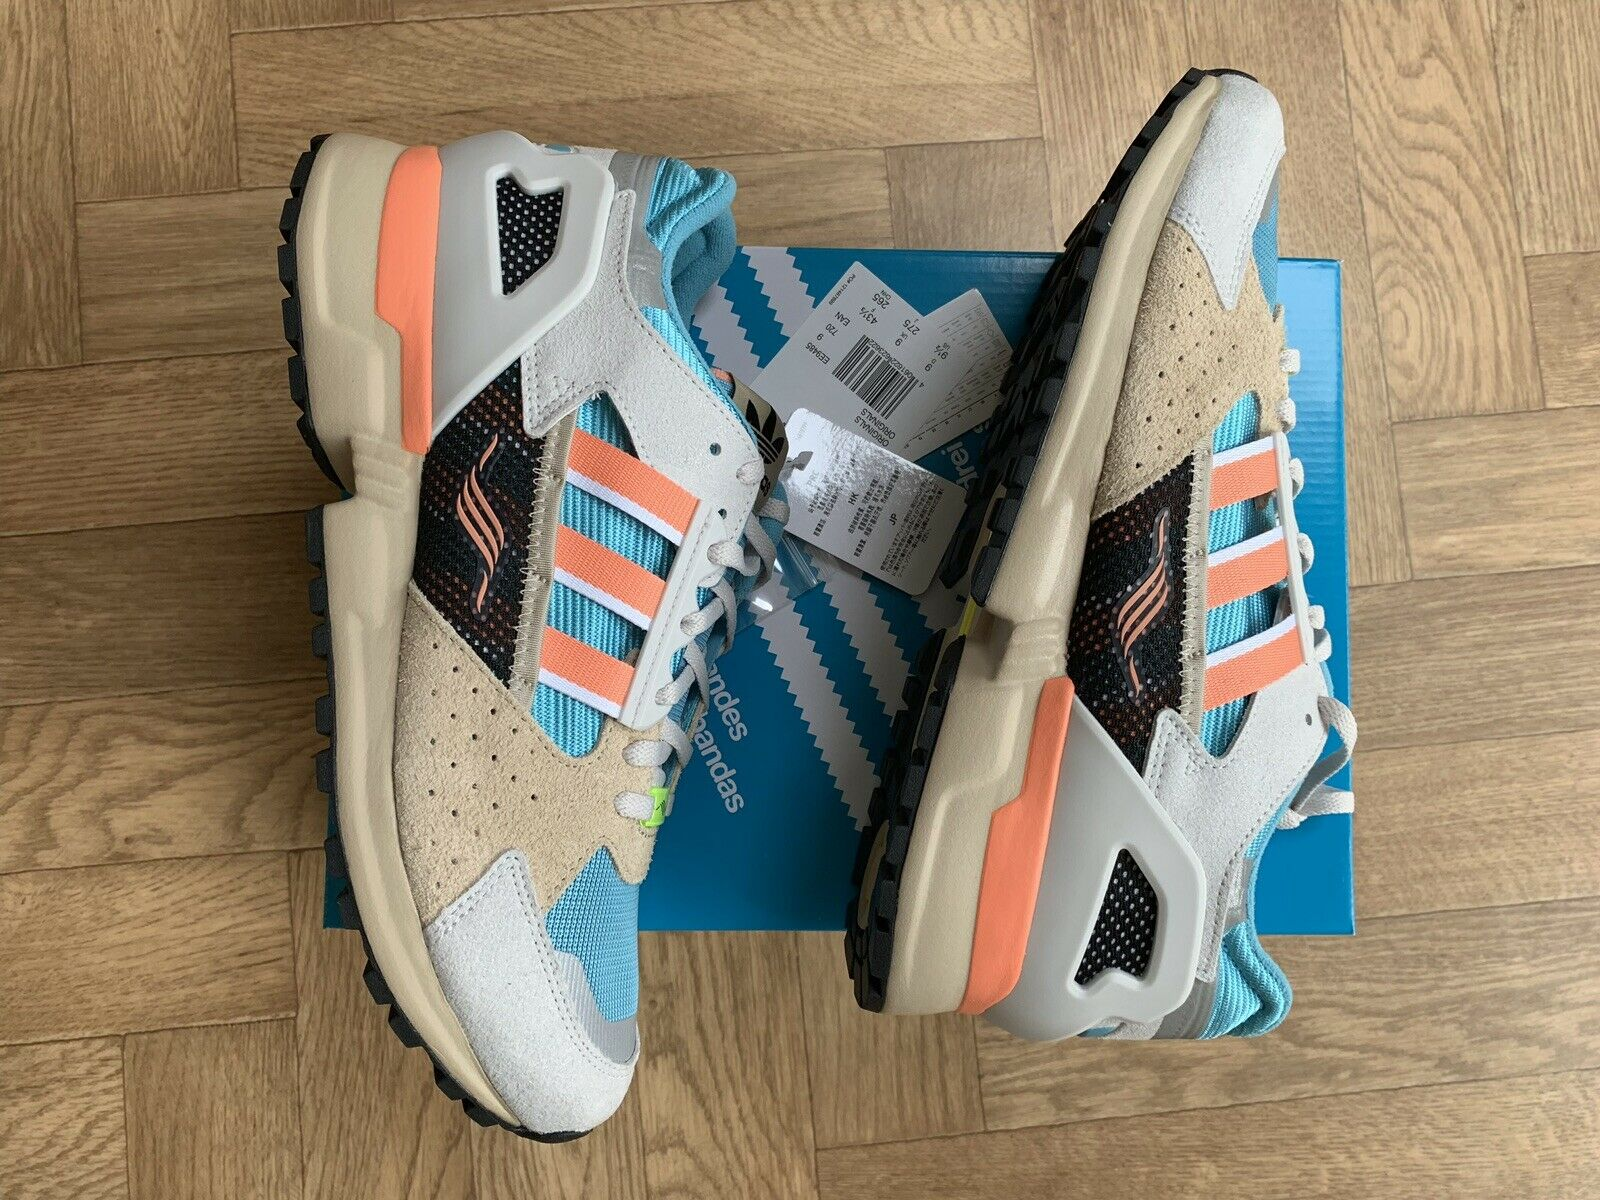 Adidas Consortium ZX 1000C Size 9 Boxed New Rare shoes EE9485